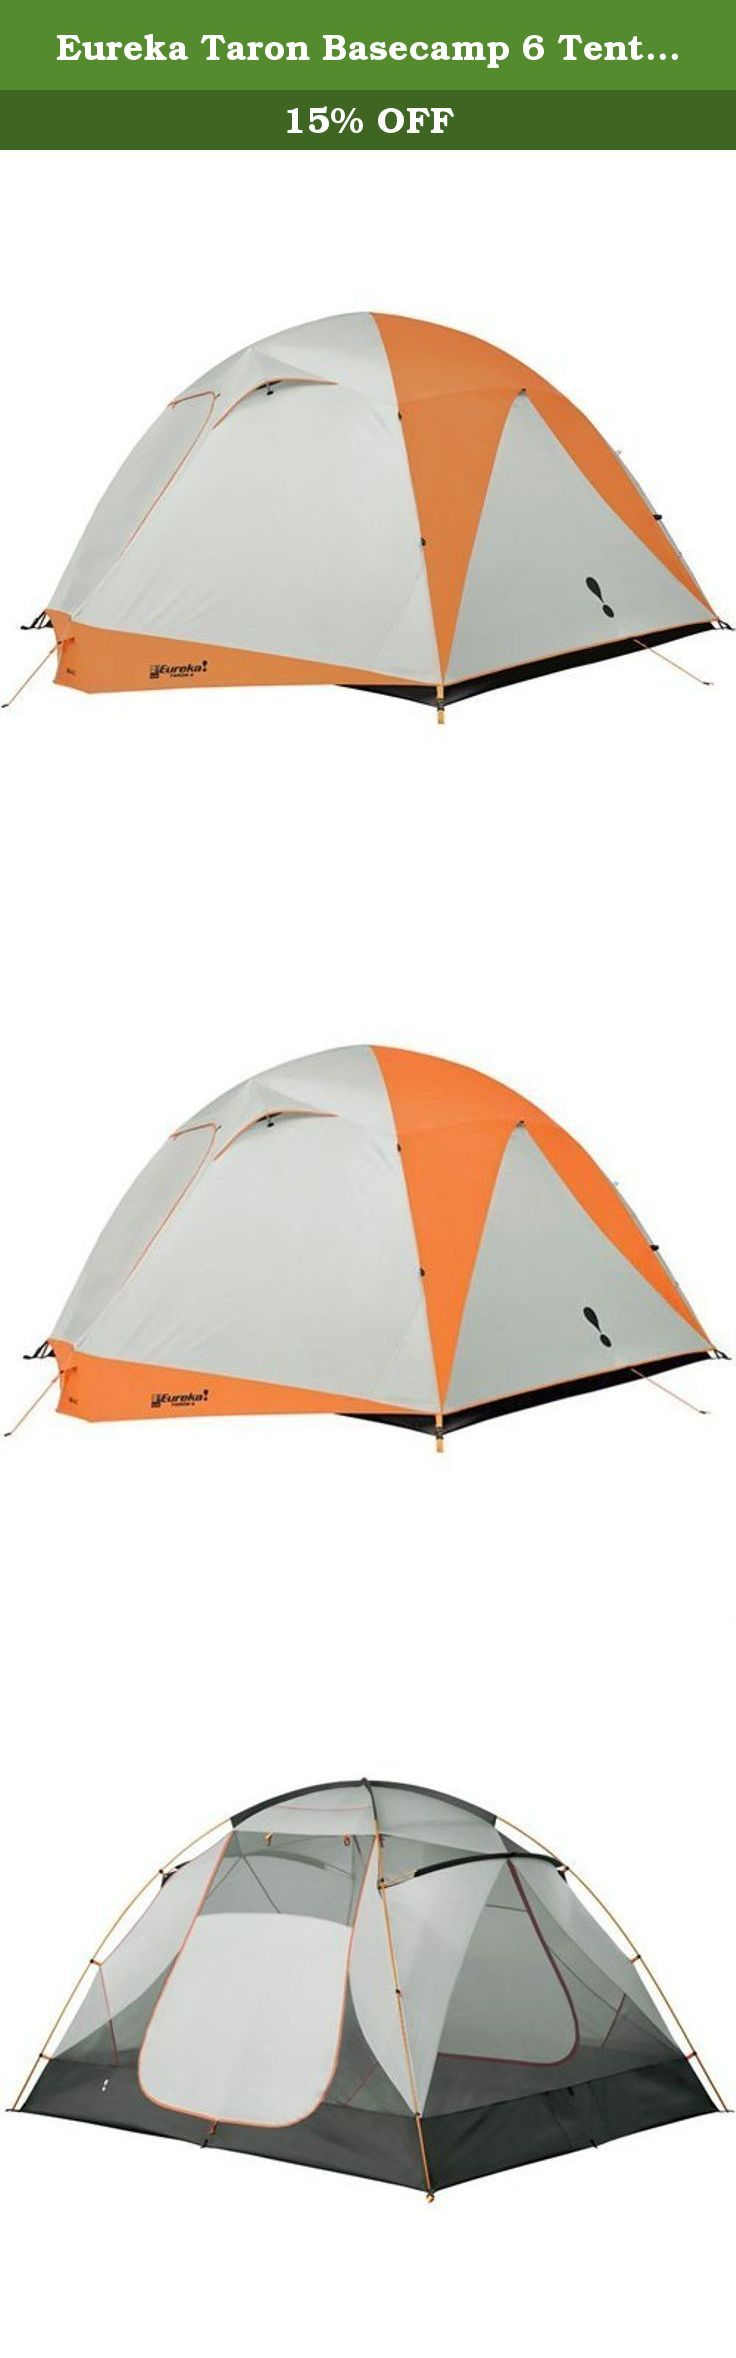 Eureka Taron Basecamp 6 Tent - 6 Person. The Taron Basecamp 6 Tent is a Eureka 6 person tent that has 2 doors and 2 vestibules for storing excess gear. This base camp tent makes a great family tent. Eureka has enhanced the livability of this tent with the V3 system. The new V3 Enhanced Tent System increases ventilation, volume, and end user versatility by maximizing frame, fly, tent body, and guy-out design features. It includes a full coverage fly that protects the tent from the worst...